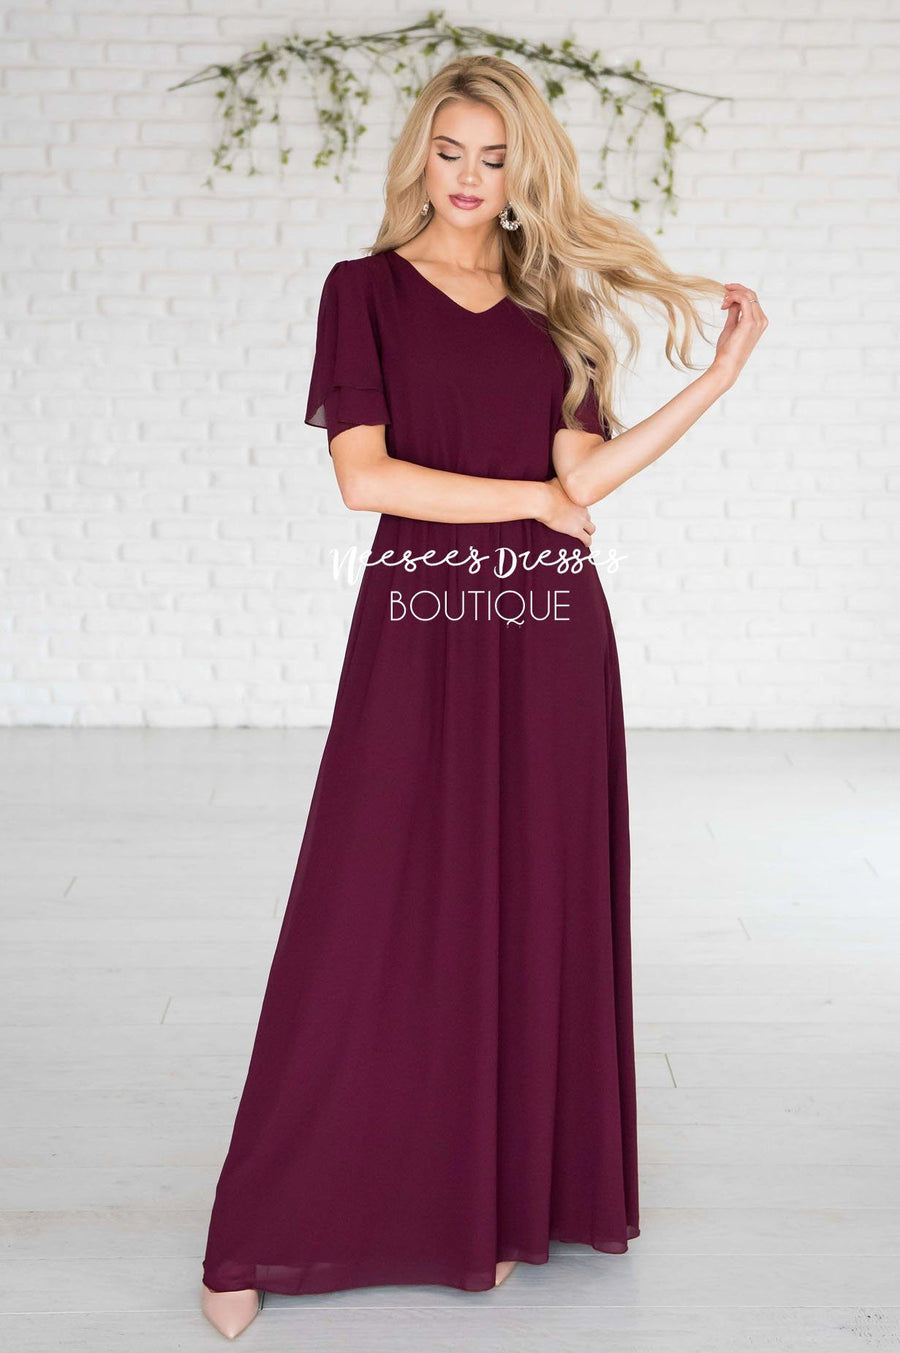 The Chloe Chiffon Maxi Dress